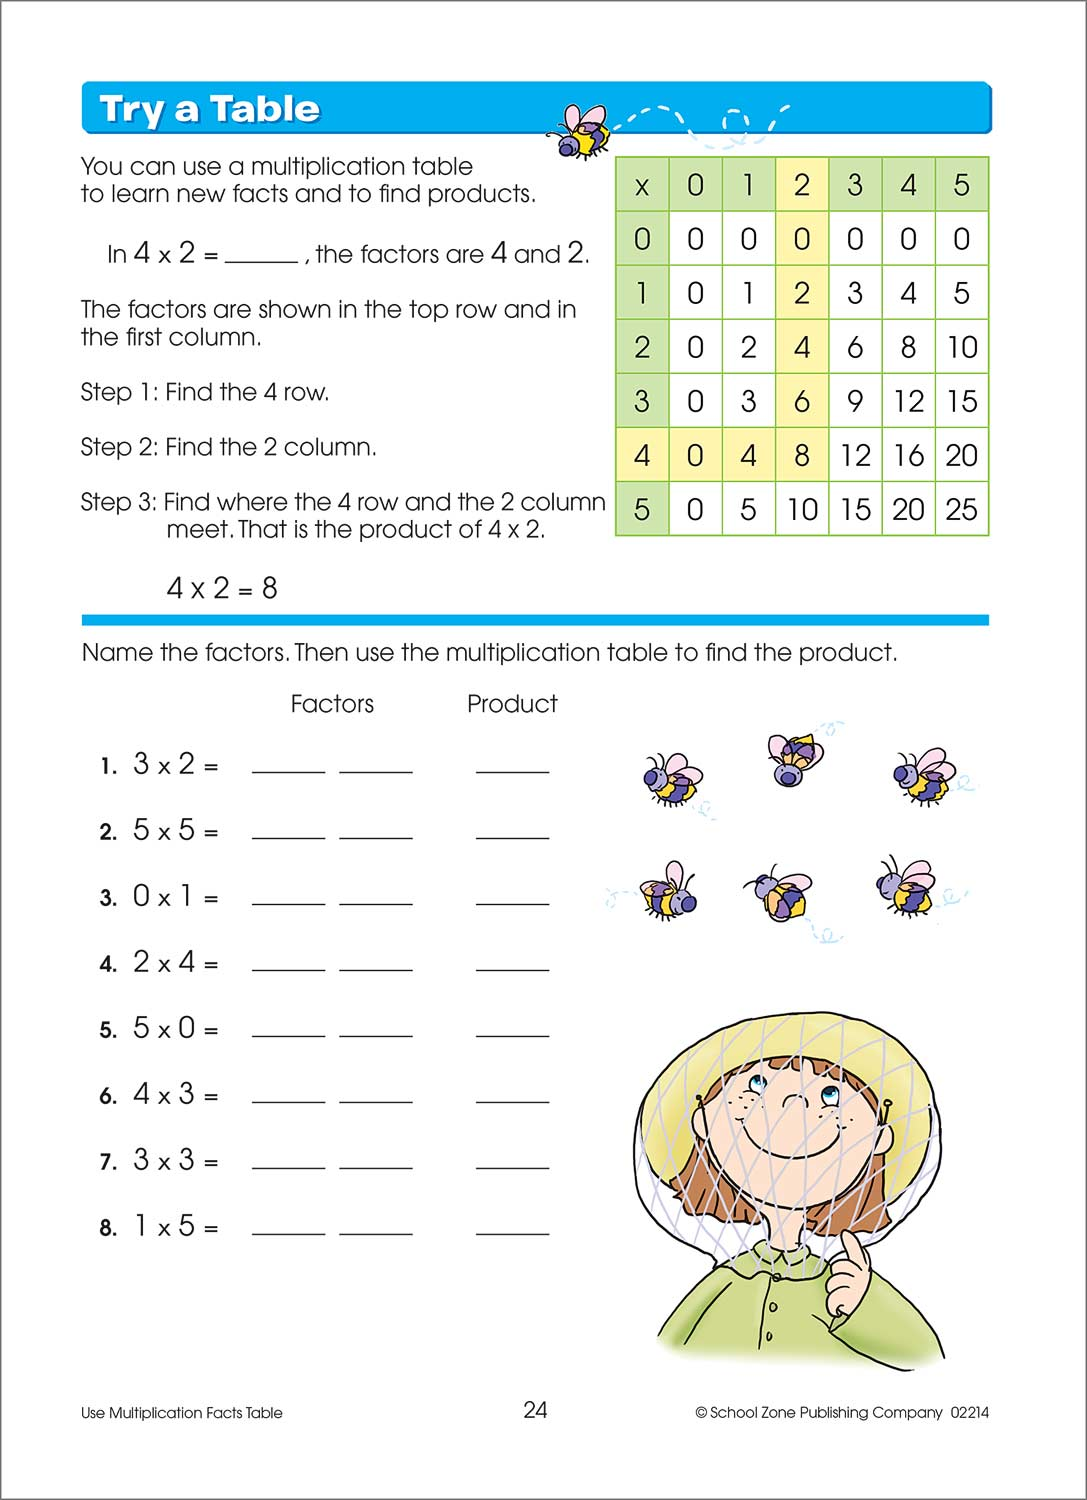 Multiplication Facts Made Easy 3-4 Deluxe Edition Workbook - Kool ...